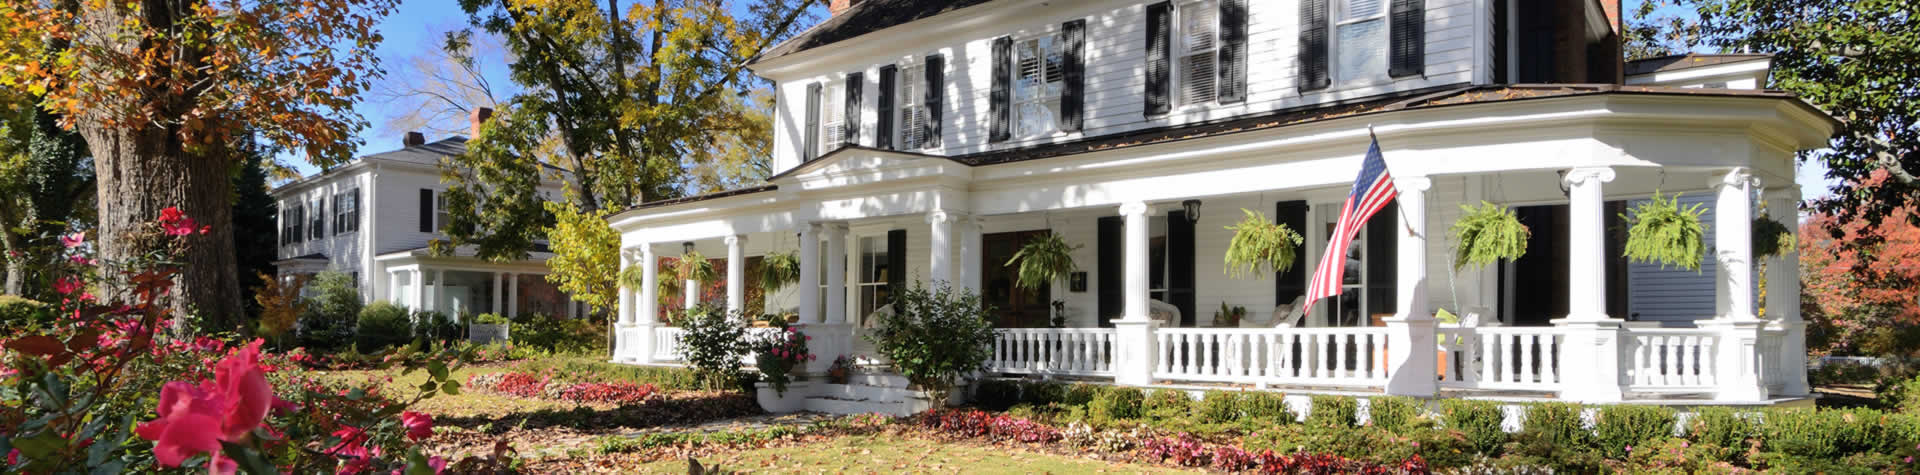 Home Insurance Changes as Housing Costs Rise in Albany, GA, Moultrie, GA, Valdosta, Sylvester, GA, and Tifton